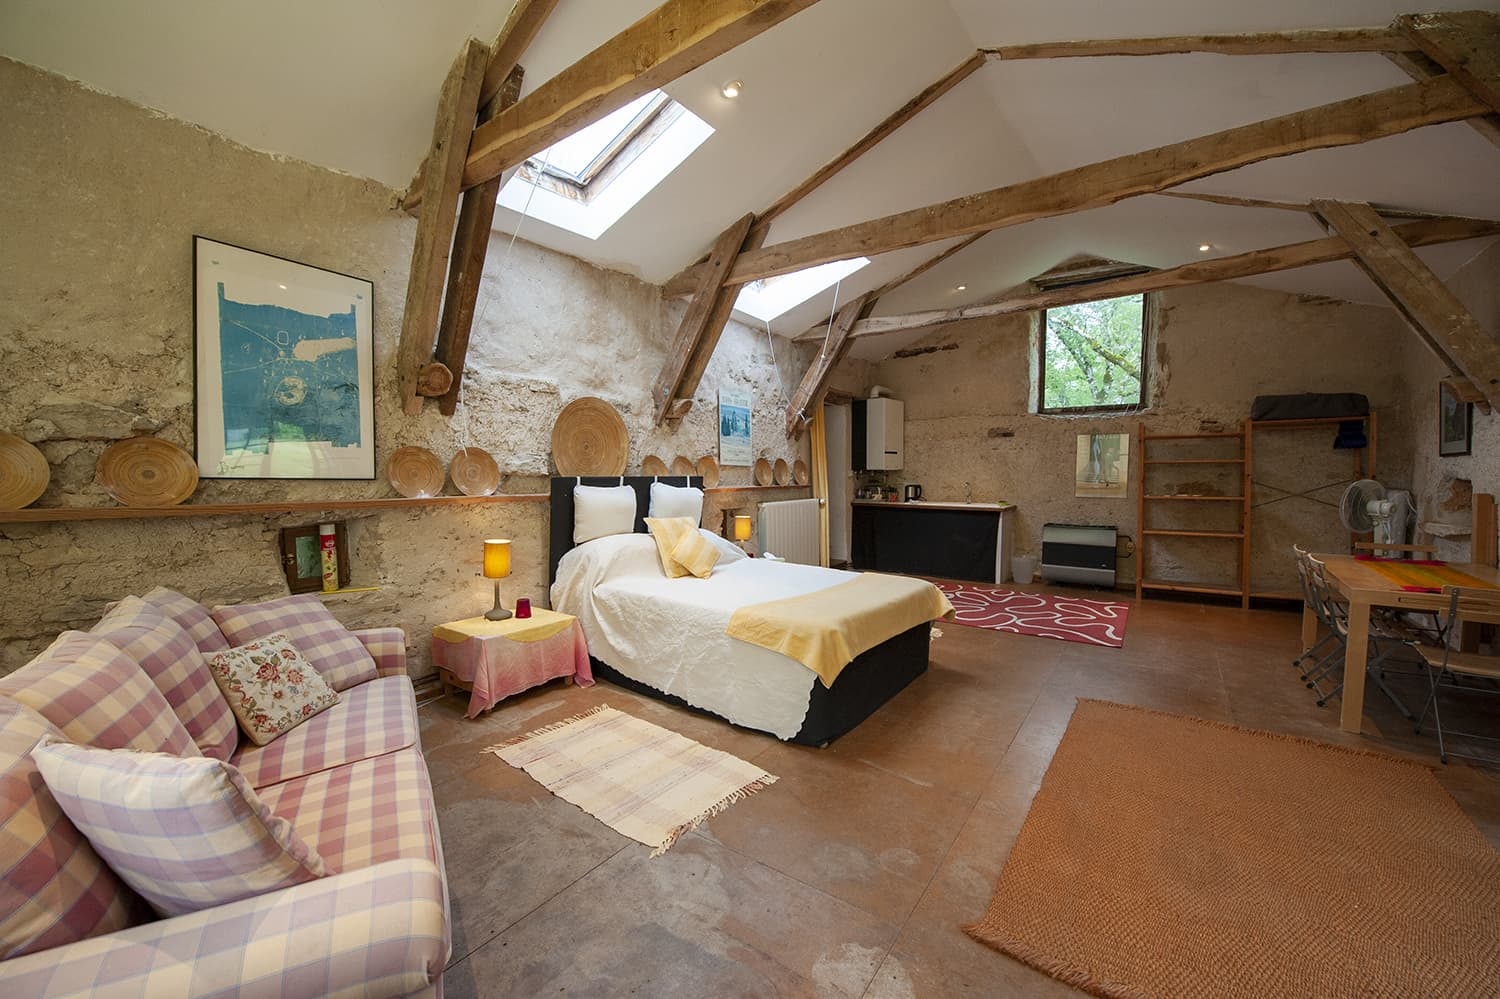 Bedroom in garden studio, Cregols, Occitanie